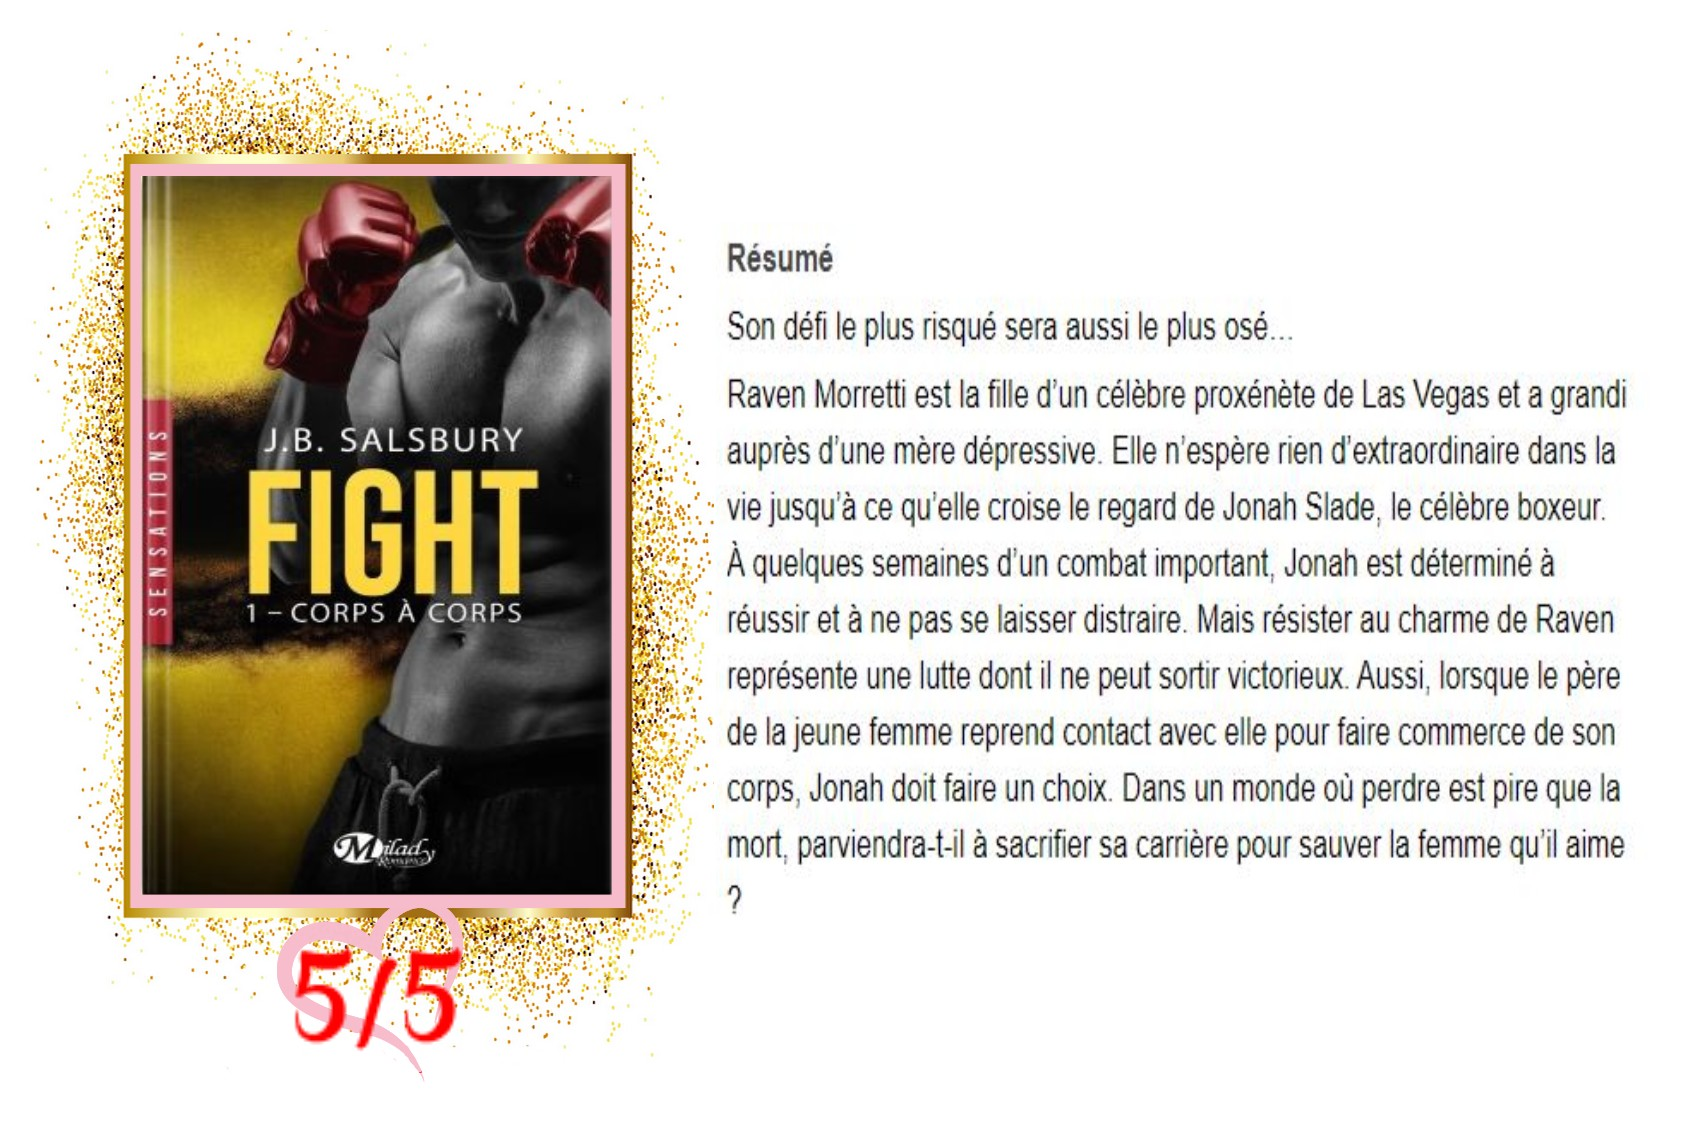 Fight tome 1 corps à corps avis